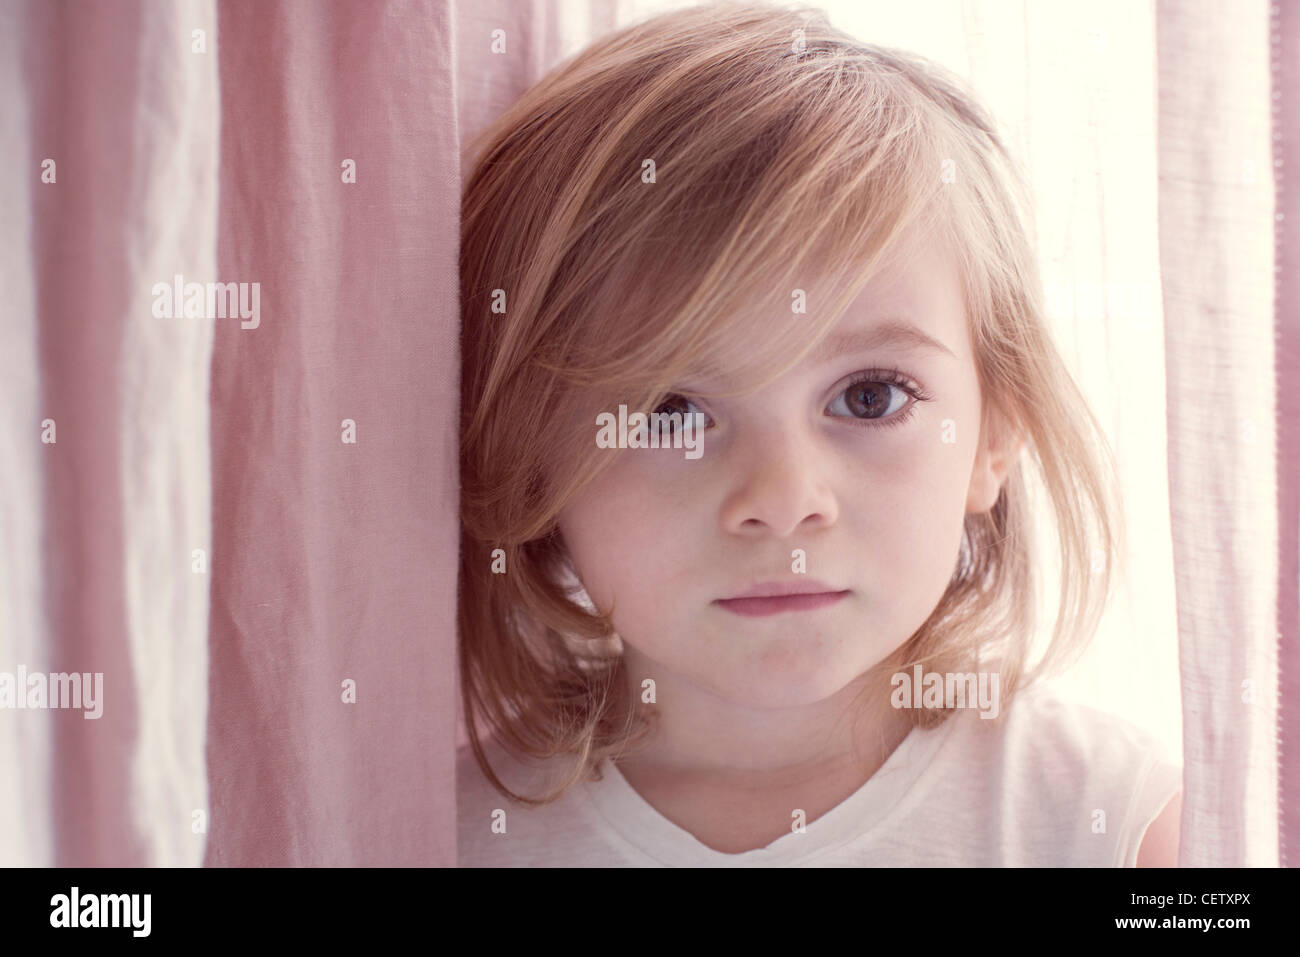 Little girly looking shyly at camera, portrait - Stock Image